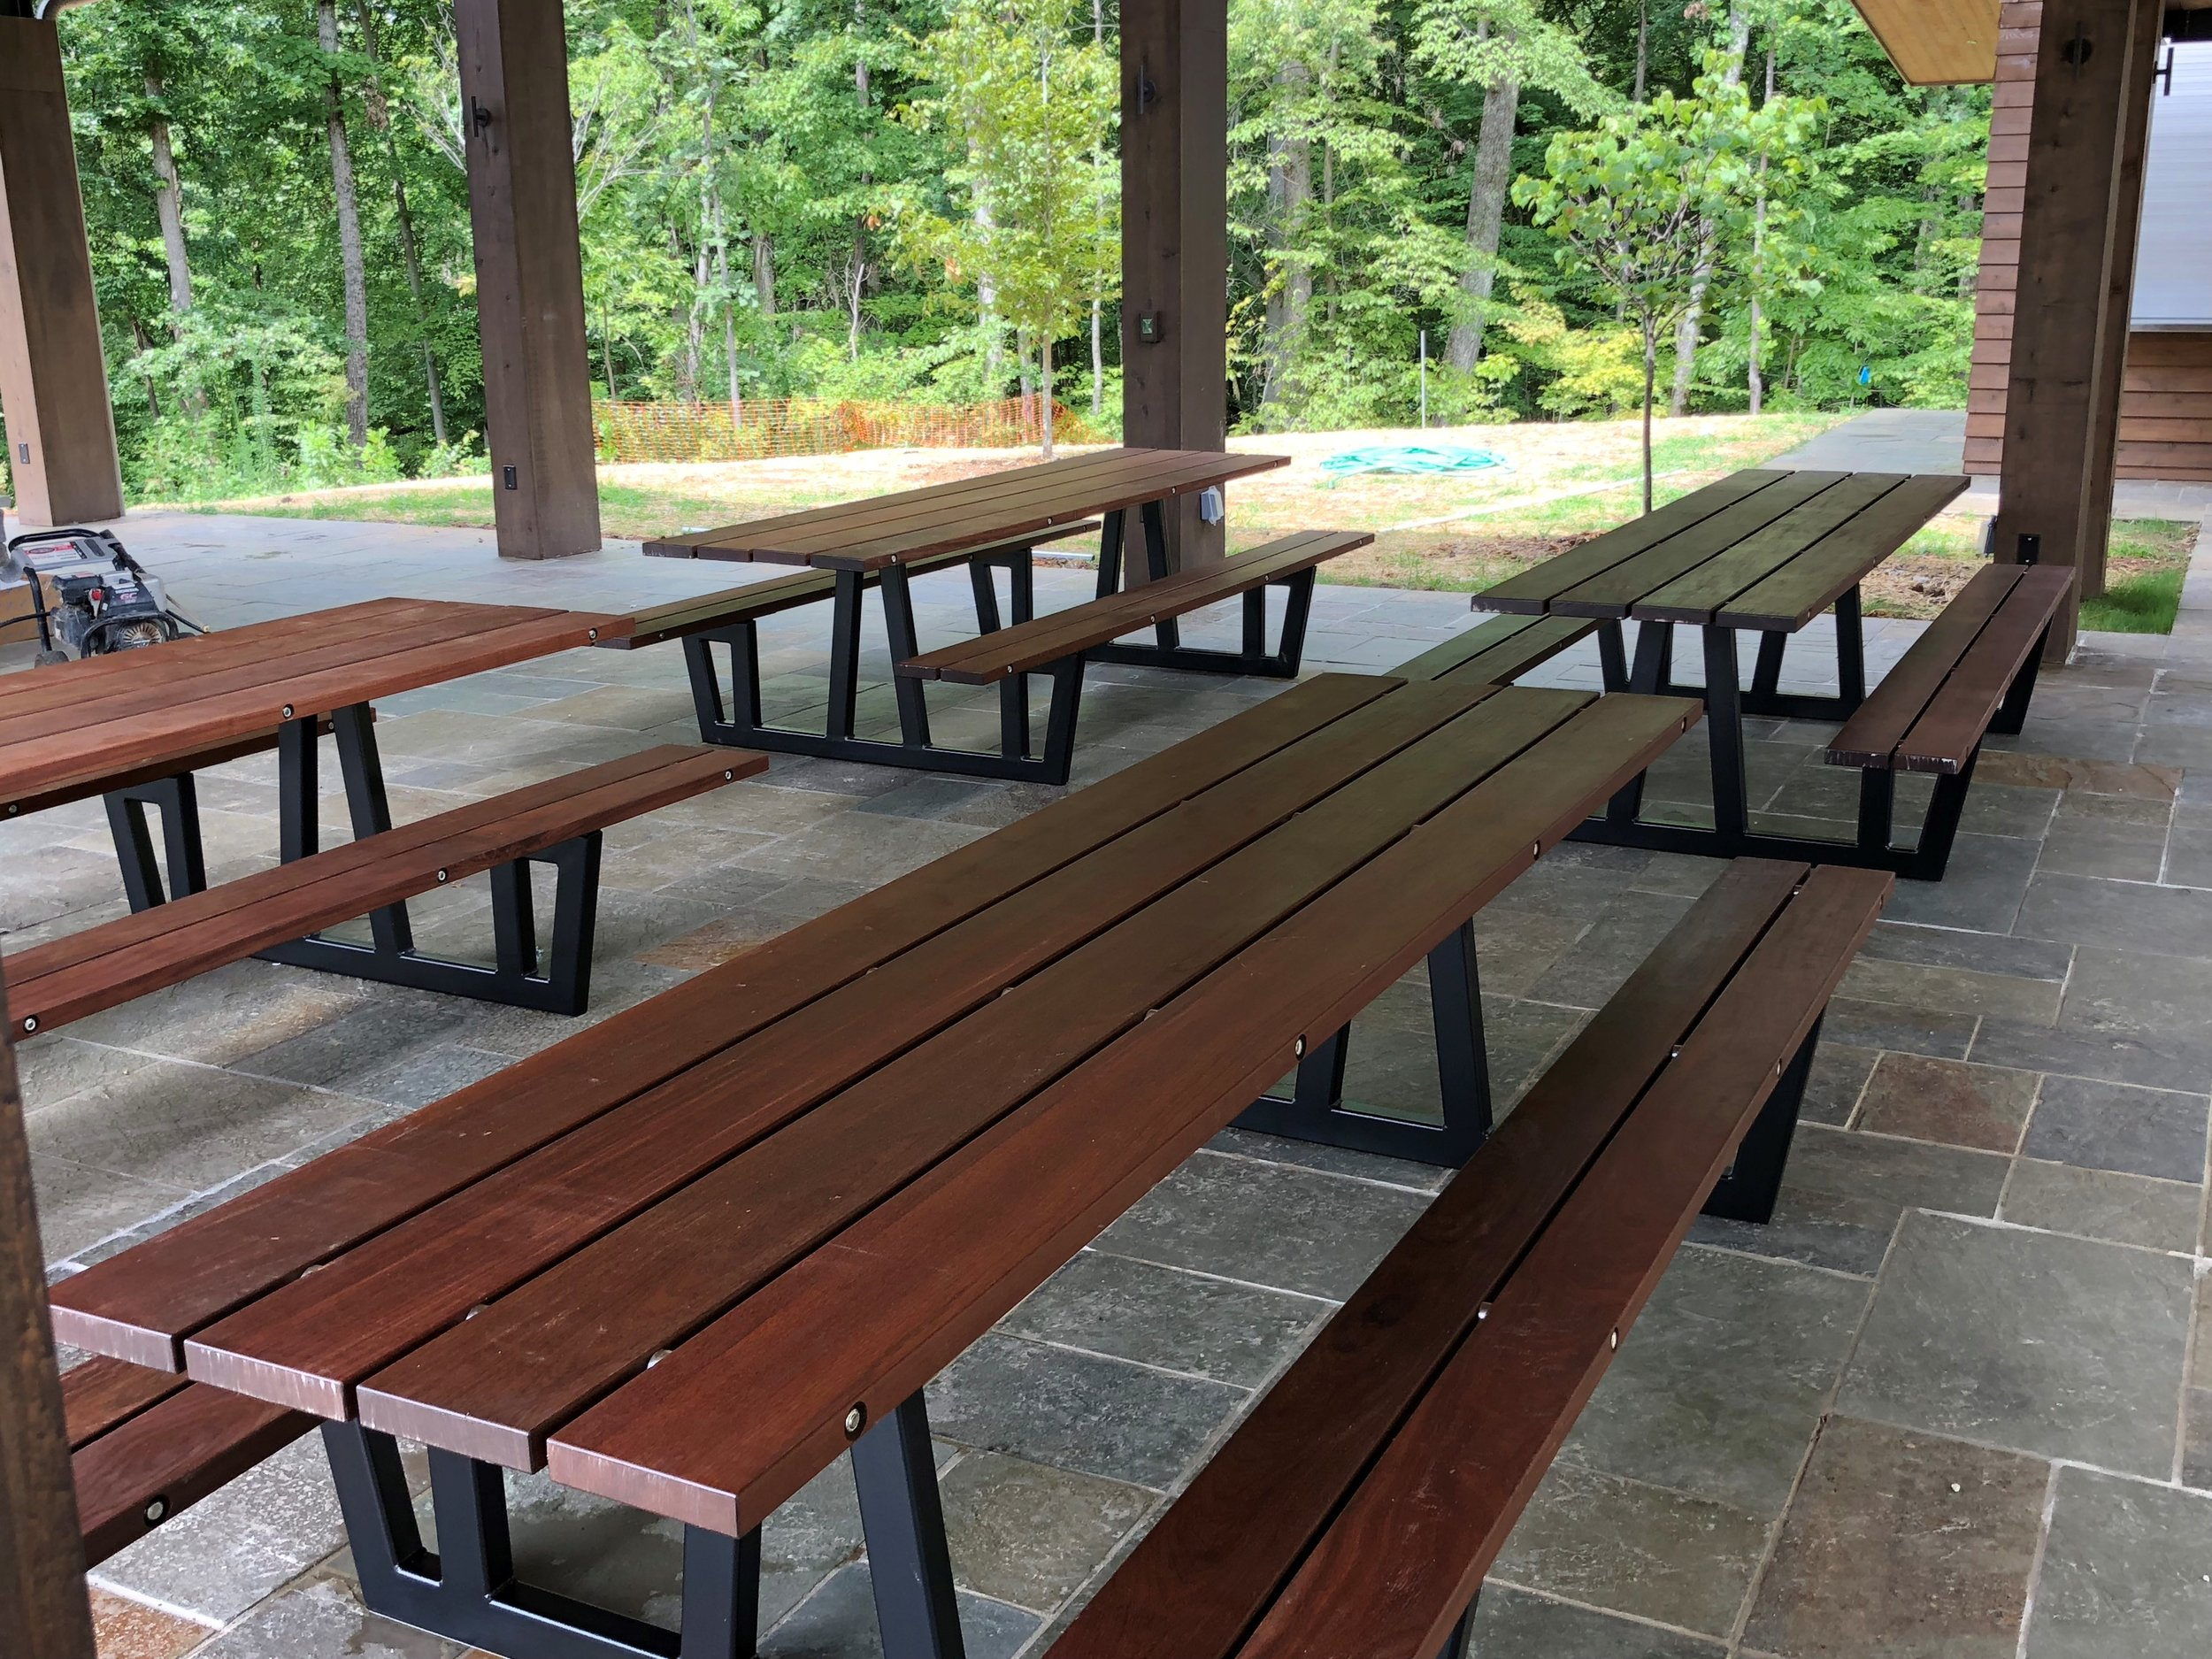 Solid Ipe (Brazilian walnut) and metal pic nic tables at Clayton Homes Headquarters.